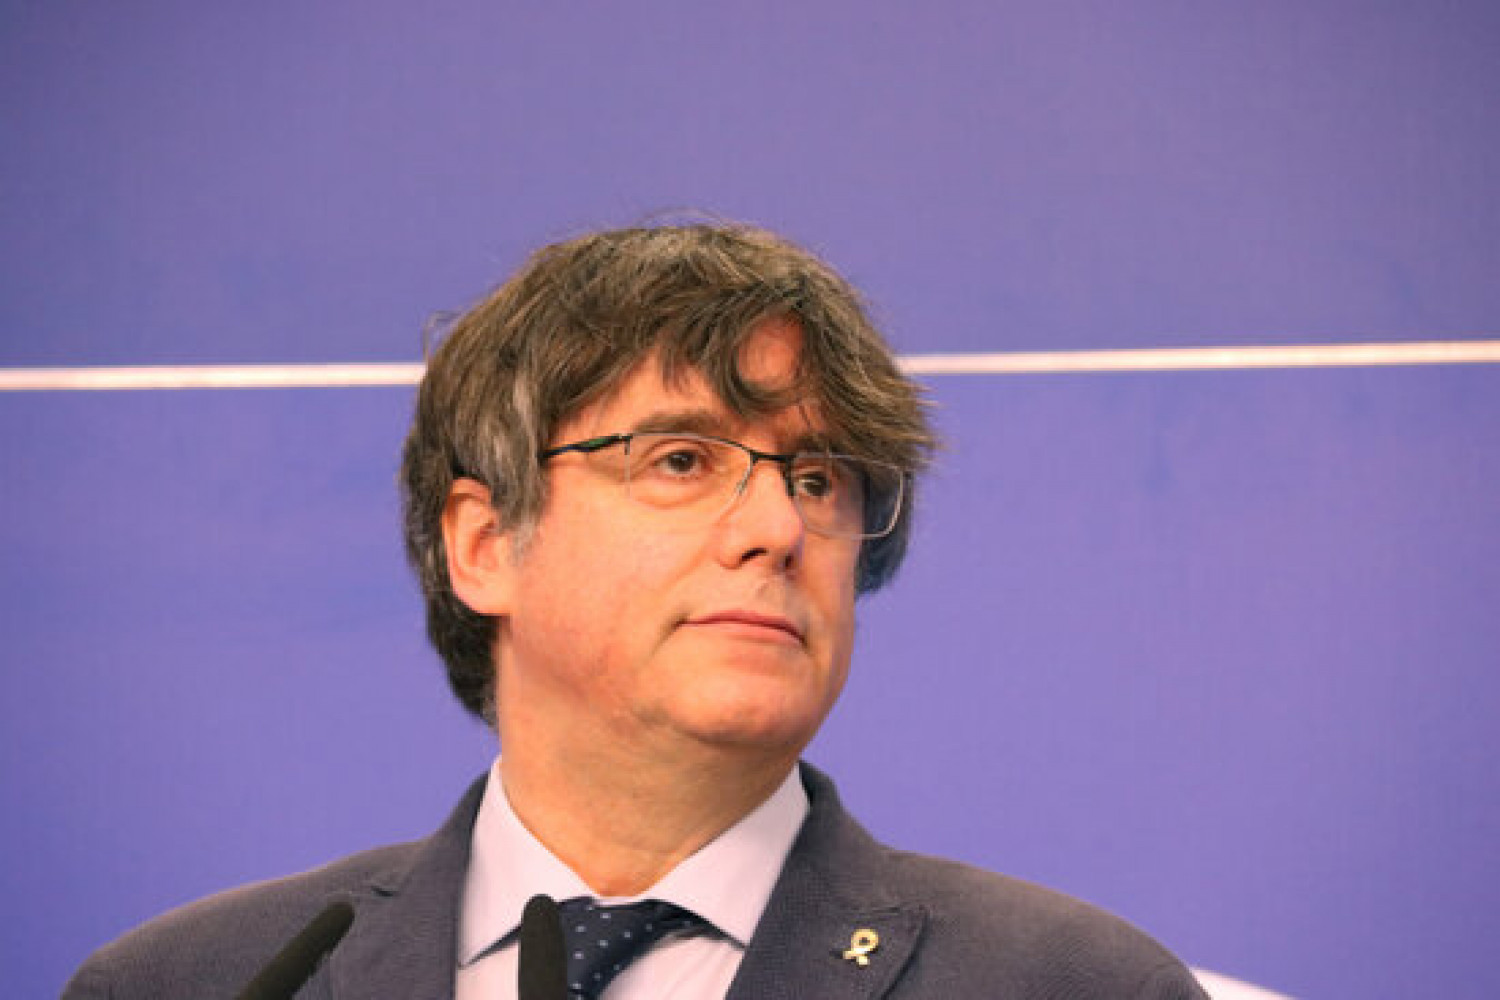 MEP Carles Puigdemont photographed during a press conference in the European Parliament (by Natàlia Segura)